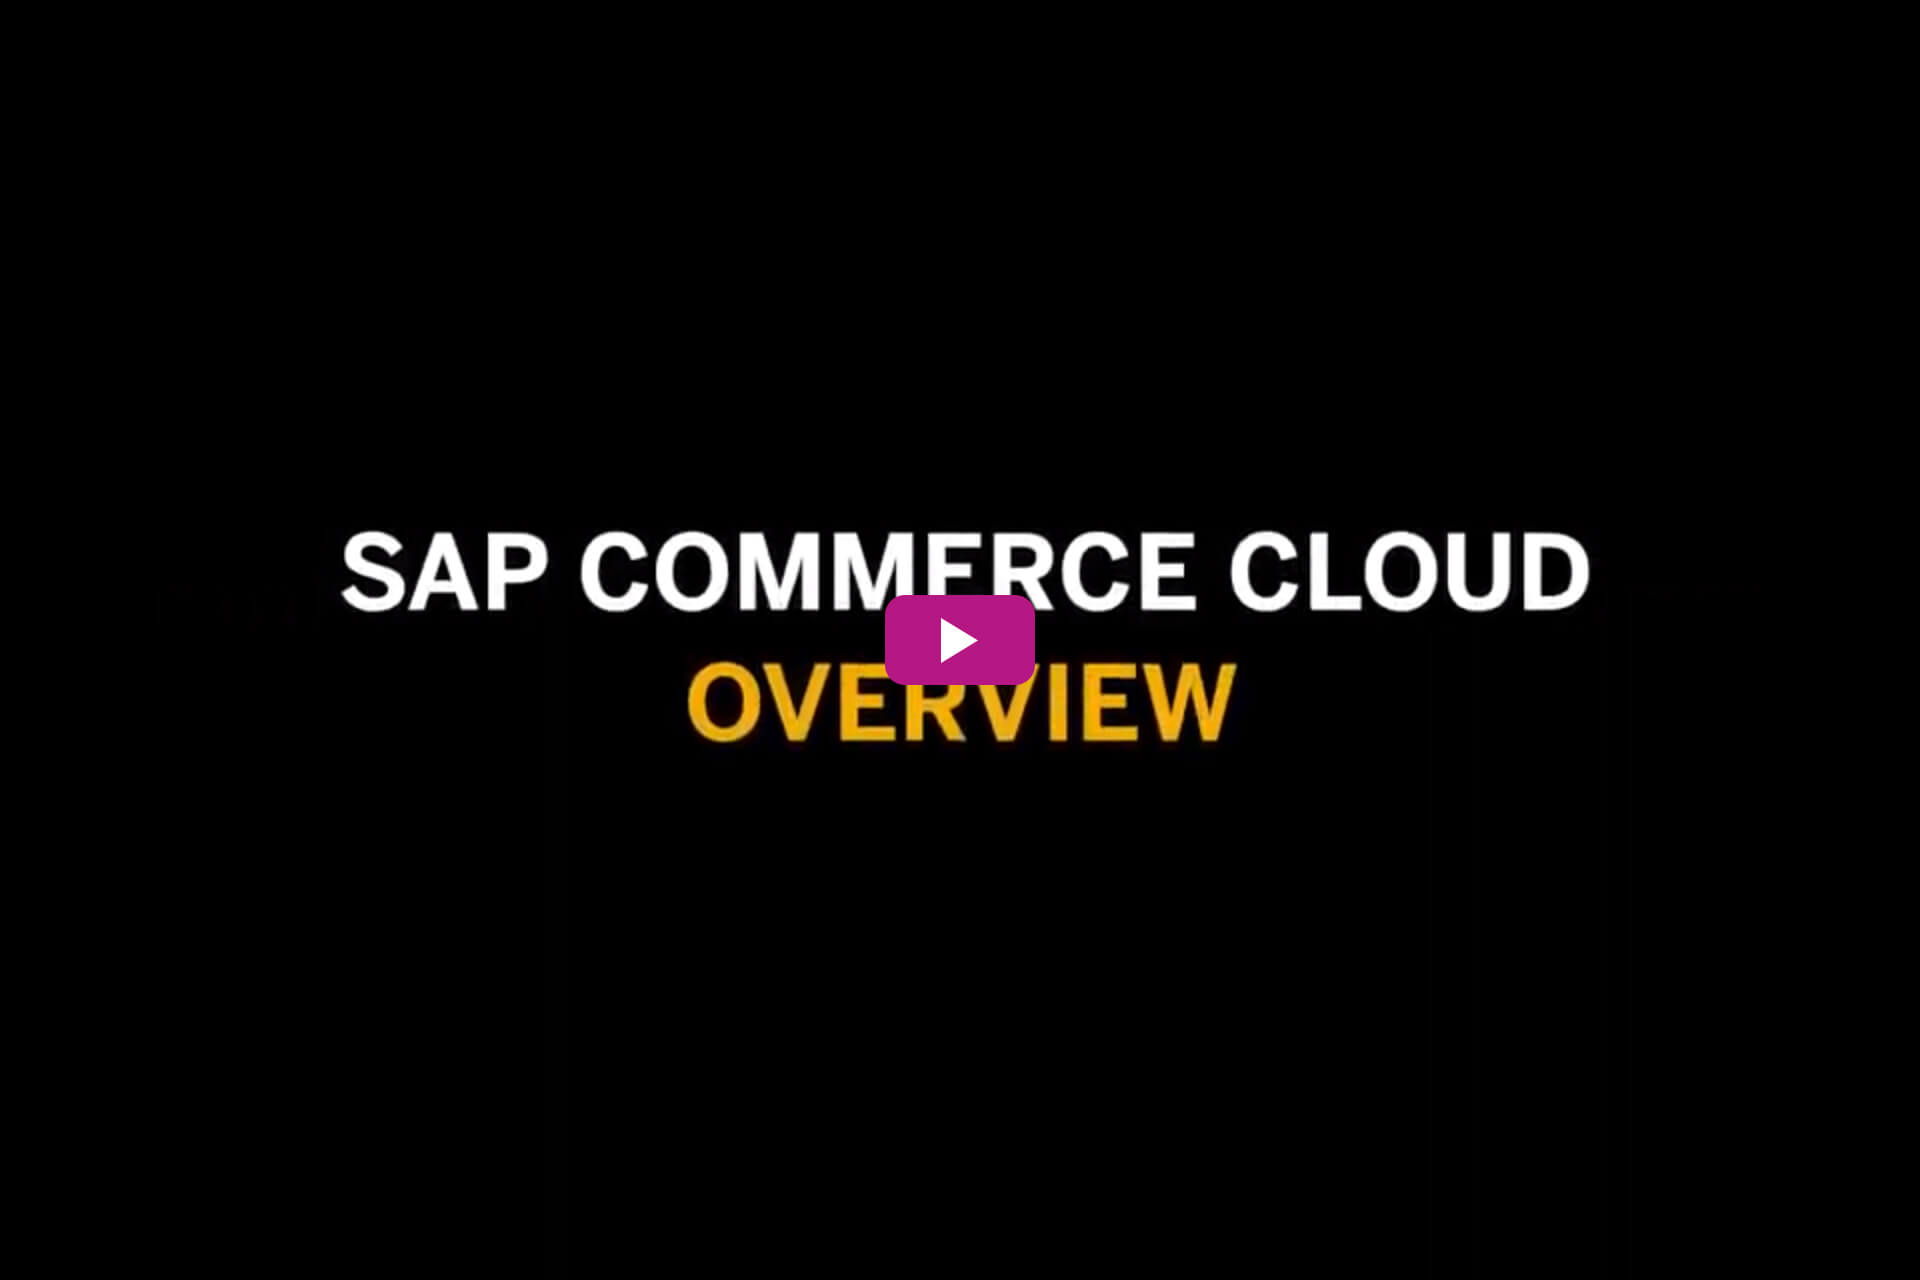 Vorschaubild für das Video SAP Commerce Cloud Overview